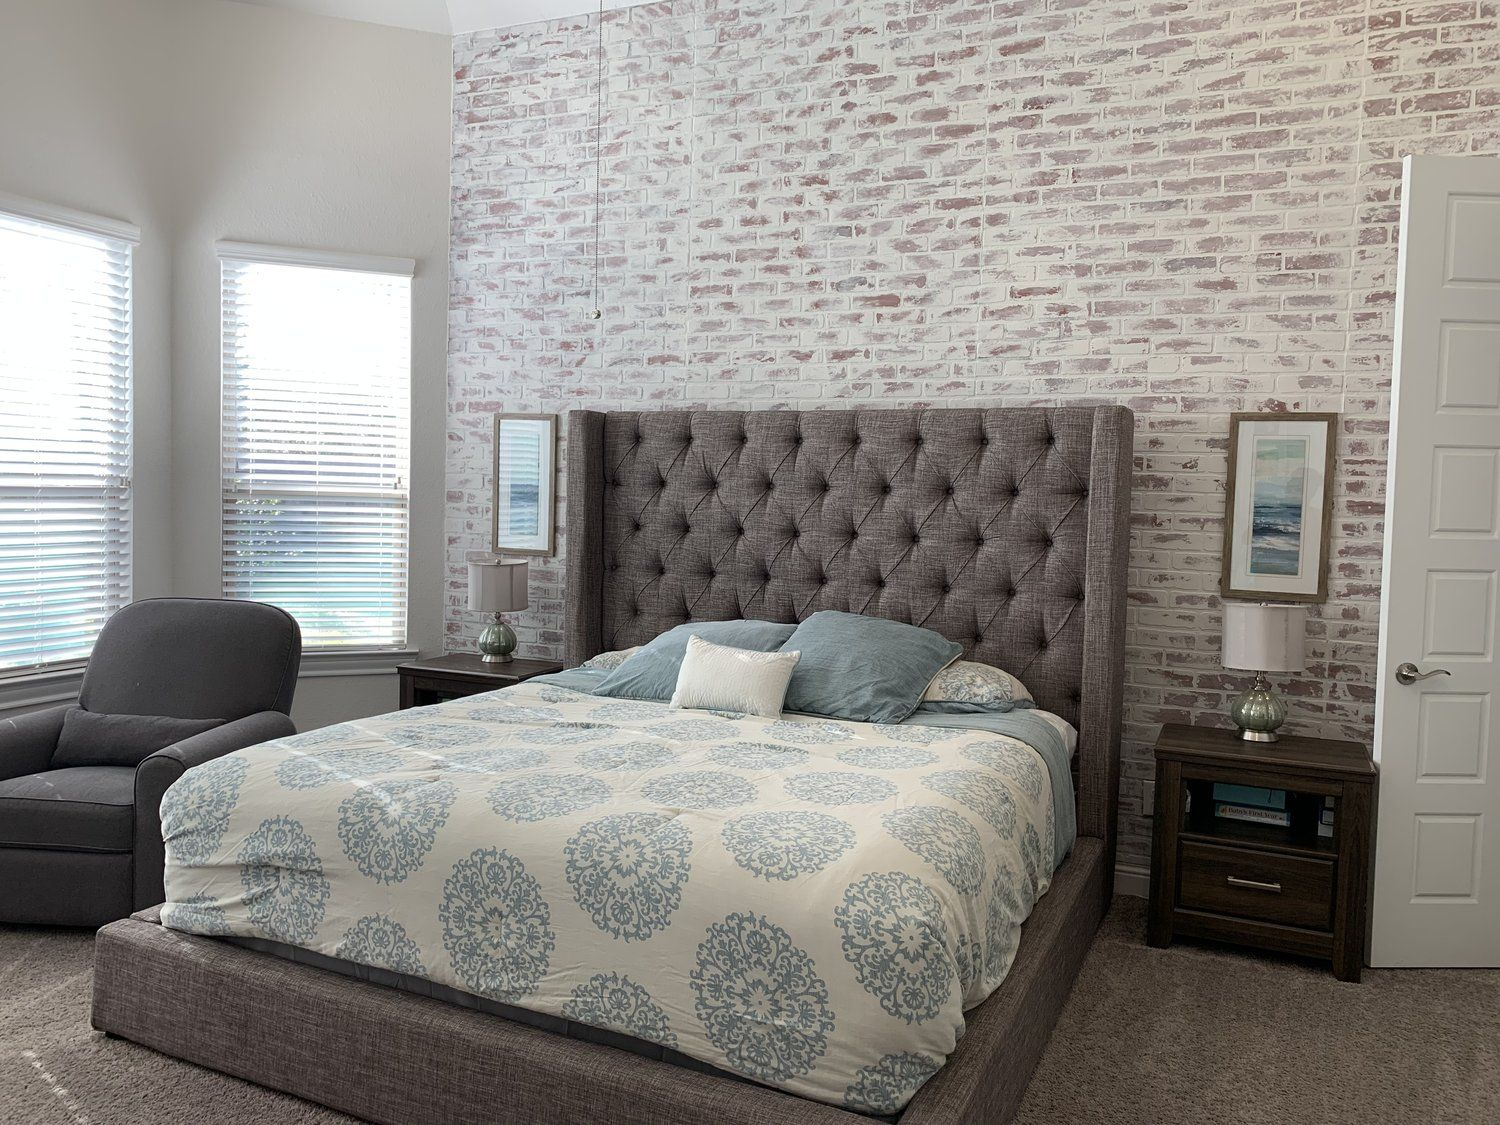 Faux Brick Wall White Washed Faux Brick Panels Faux Brick Wall Decor Bedroom